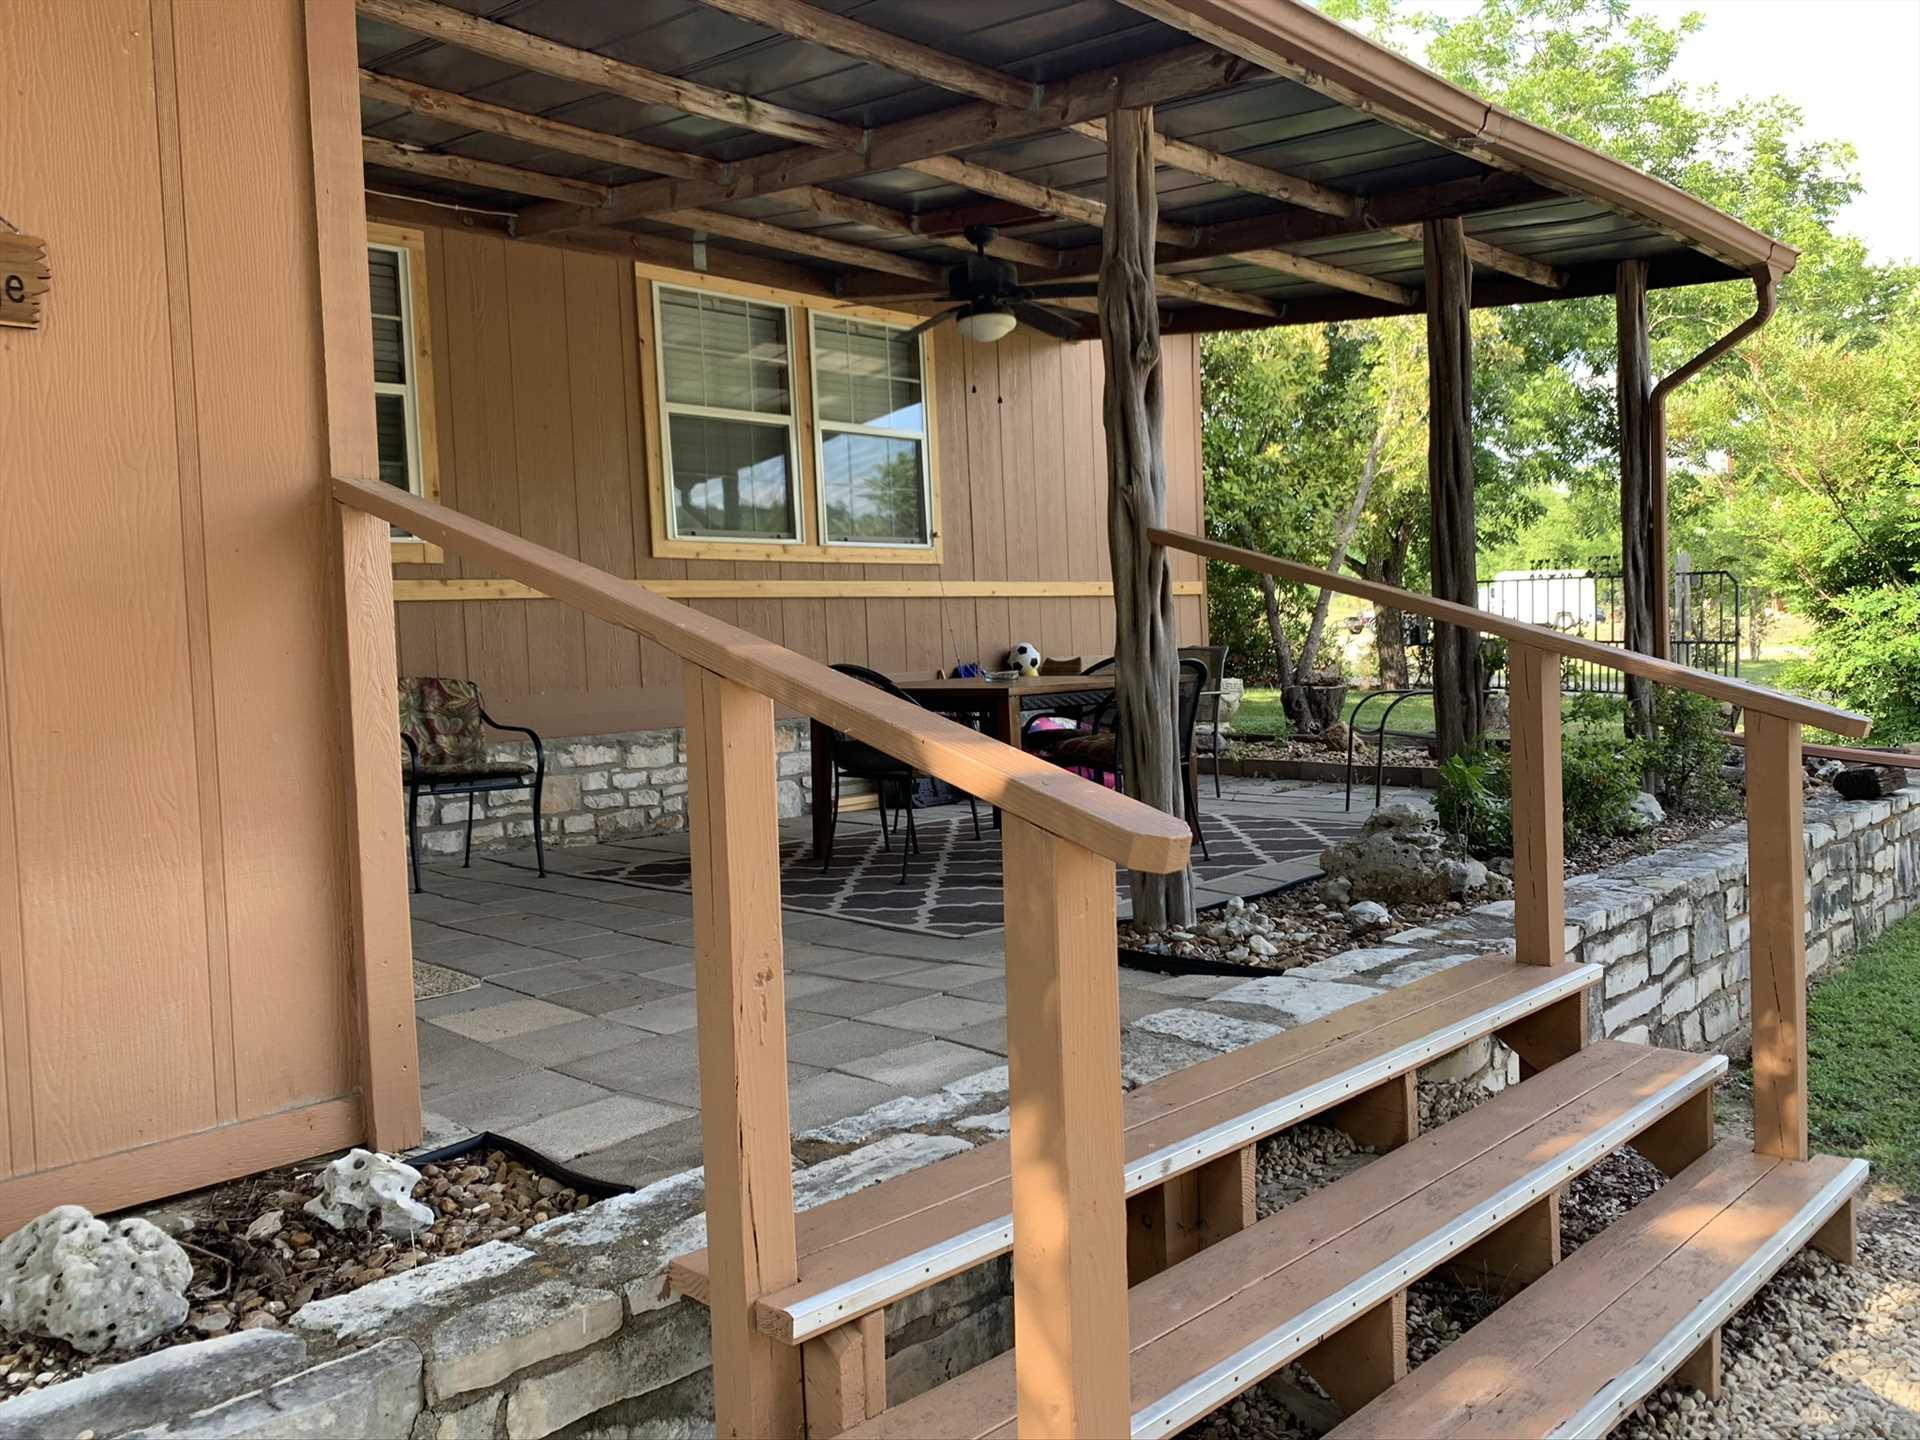 The front porch has plenty of outdoor furniture, and is shaded so you can enjoy the fresh air out of the Texas sun.